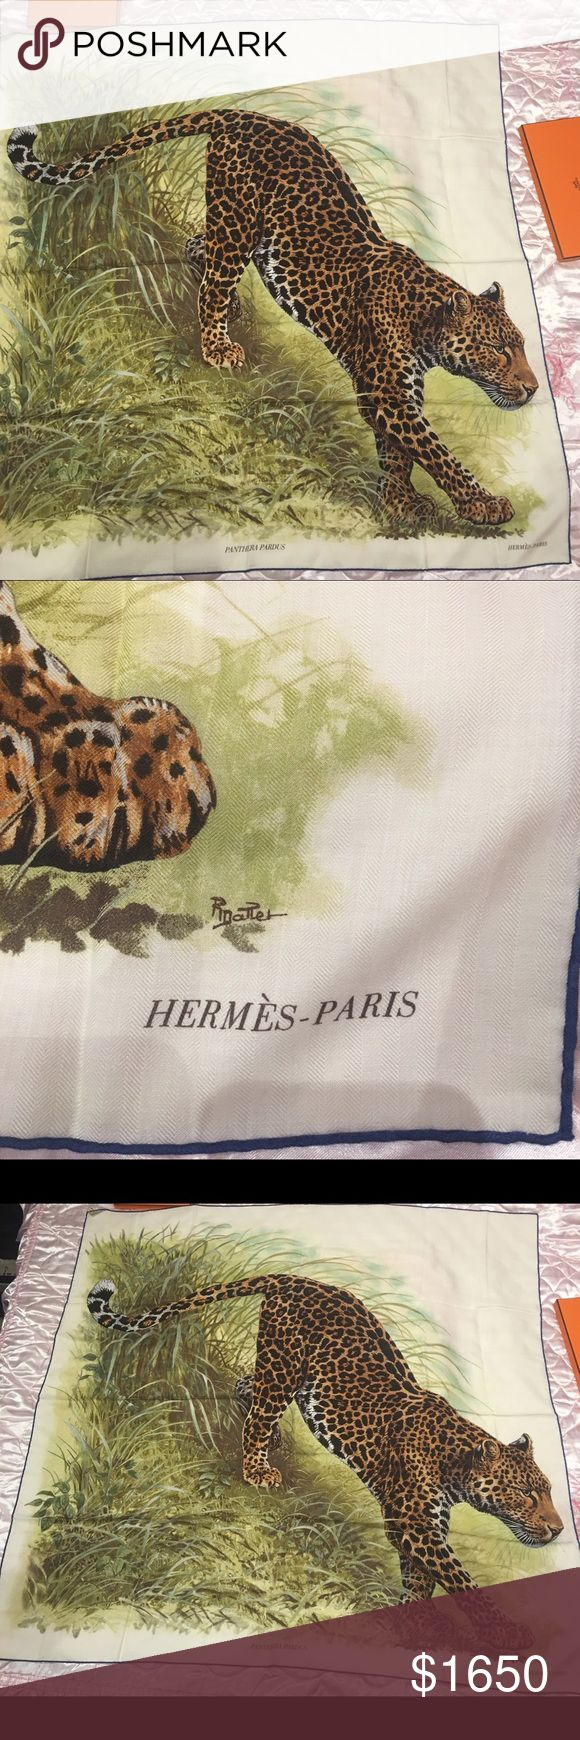 "Hermes Cashmere Shawl Panthera Pardus NIB Ltd. Ed. 💯% authentic! Hermes ""Panthera Pardus"" cashmere and silk shawl! Fabric: 70% cashmere, 30% silk Origin: France Condition: Pristine, never worn Accompanied by: Box, caretag, retail UPC and ribbon, Hermes orange box, and receipt.  Size: 140cm (55"" square) Hermes Accessories Scarves & Wraps"